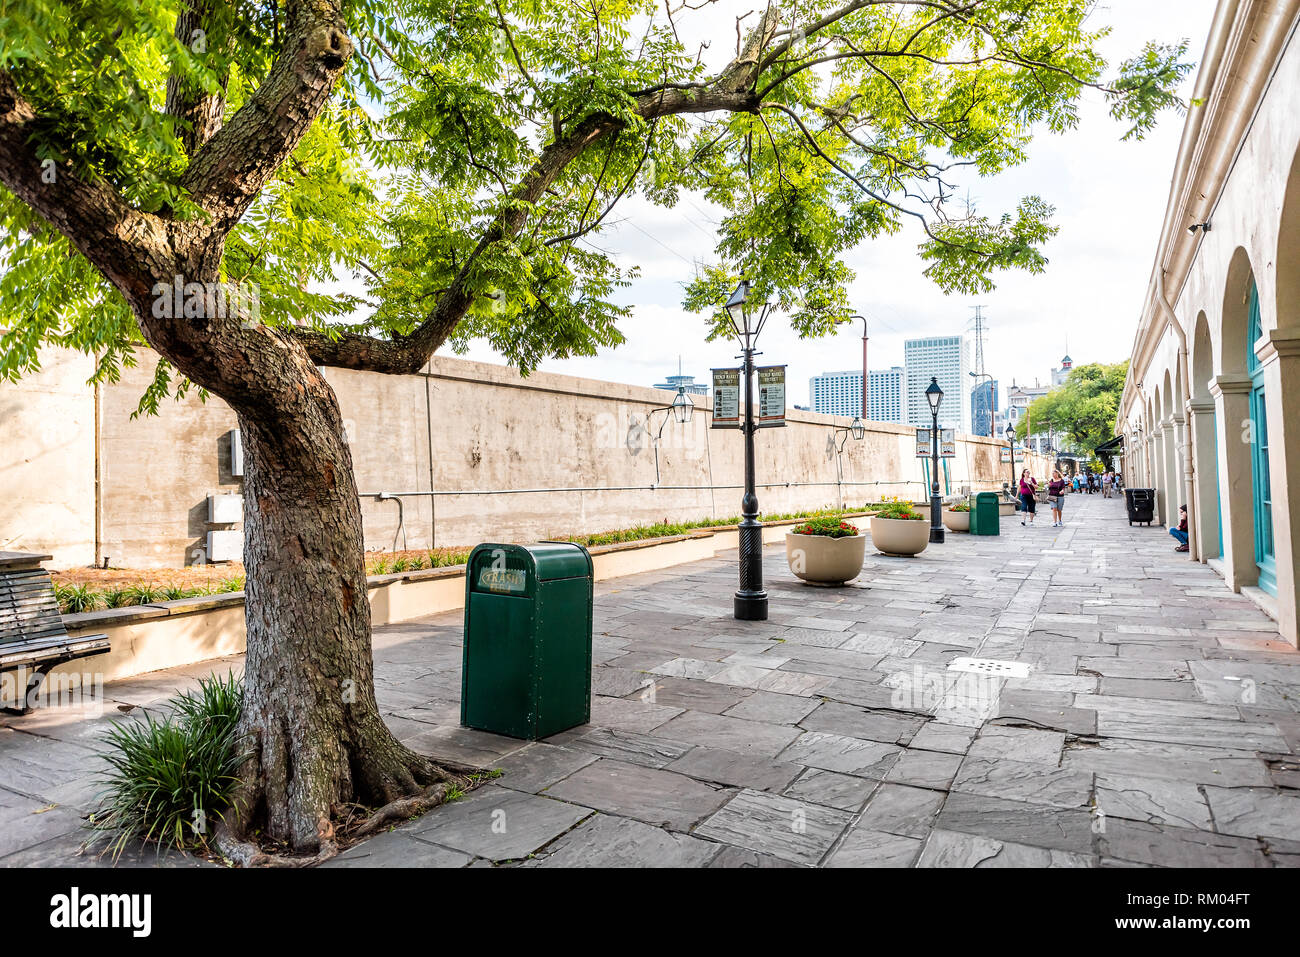 New Orleans, USA - April 23, 2018: Old town Decatur alley street in Louisiana famous city with nobody during spring day - Stock Image